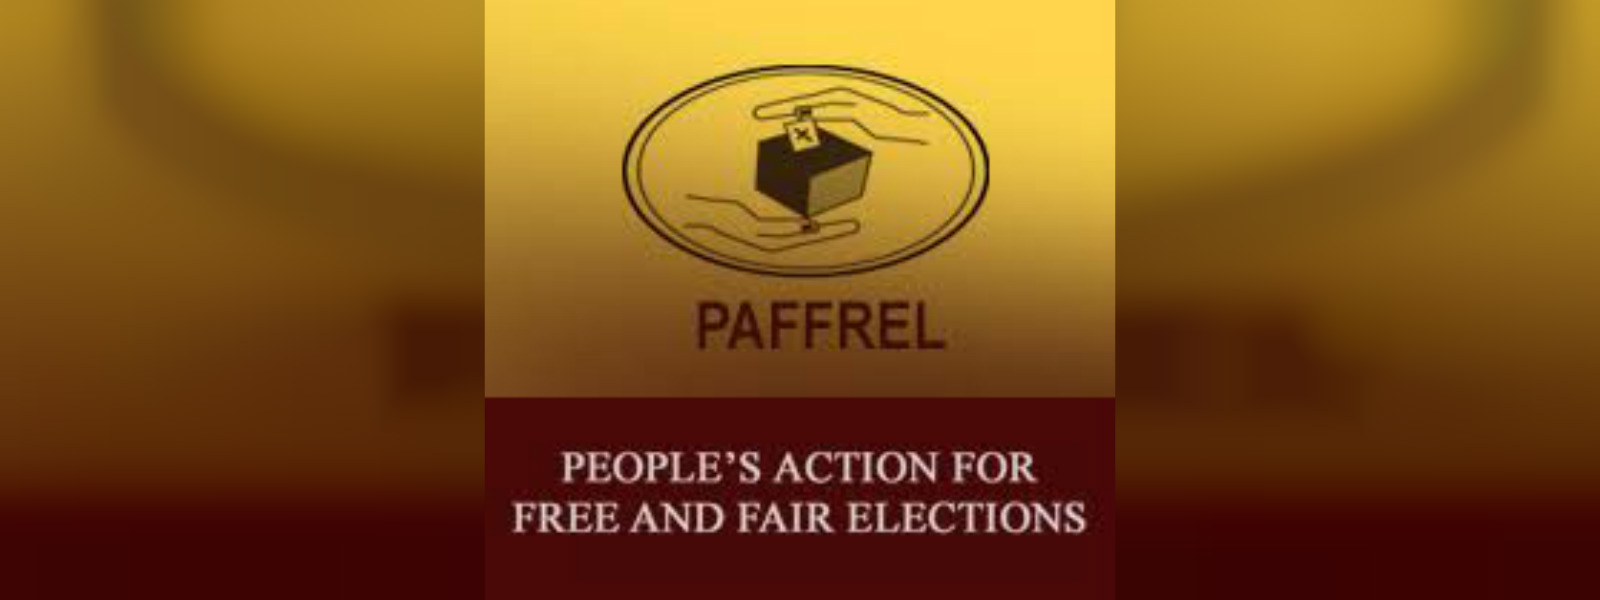 Special mechanism to monitor social media during elections – PAFFREL